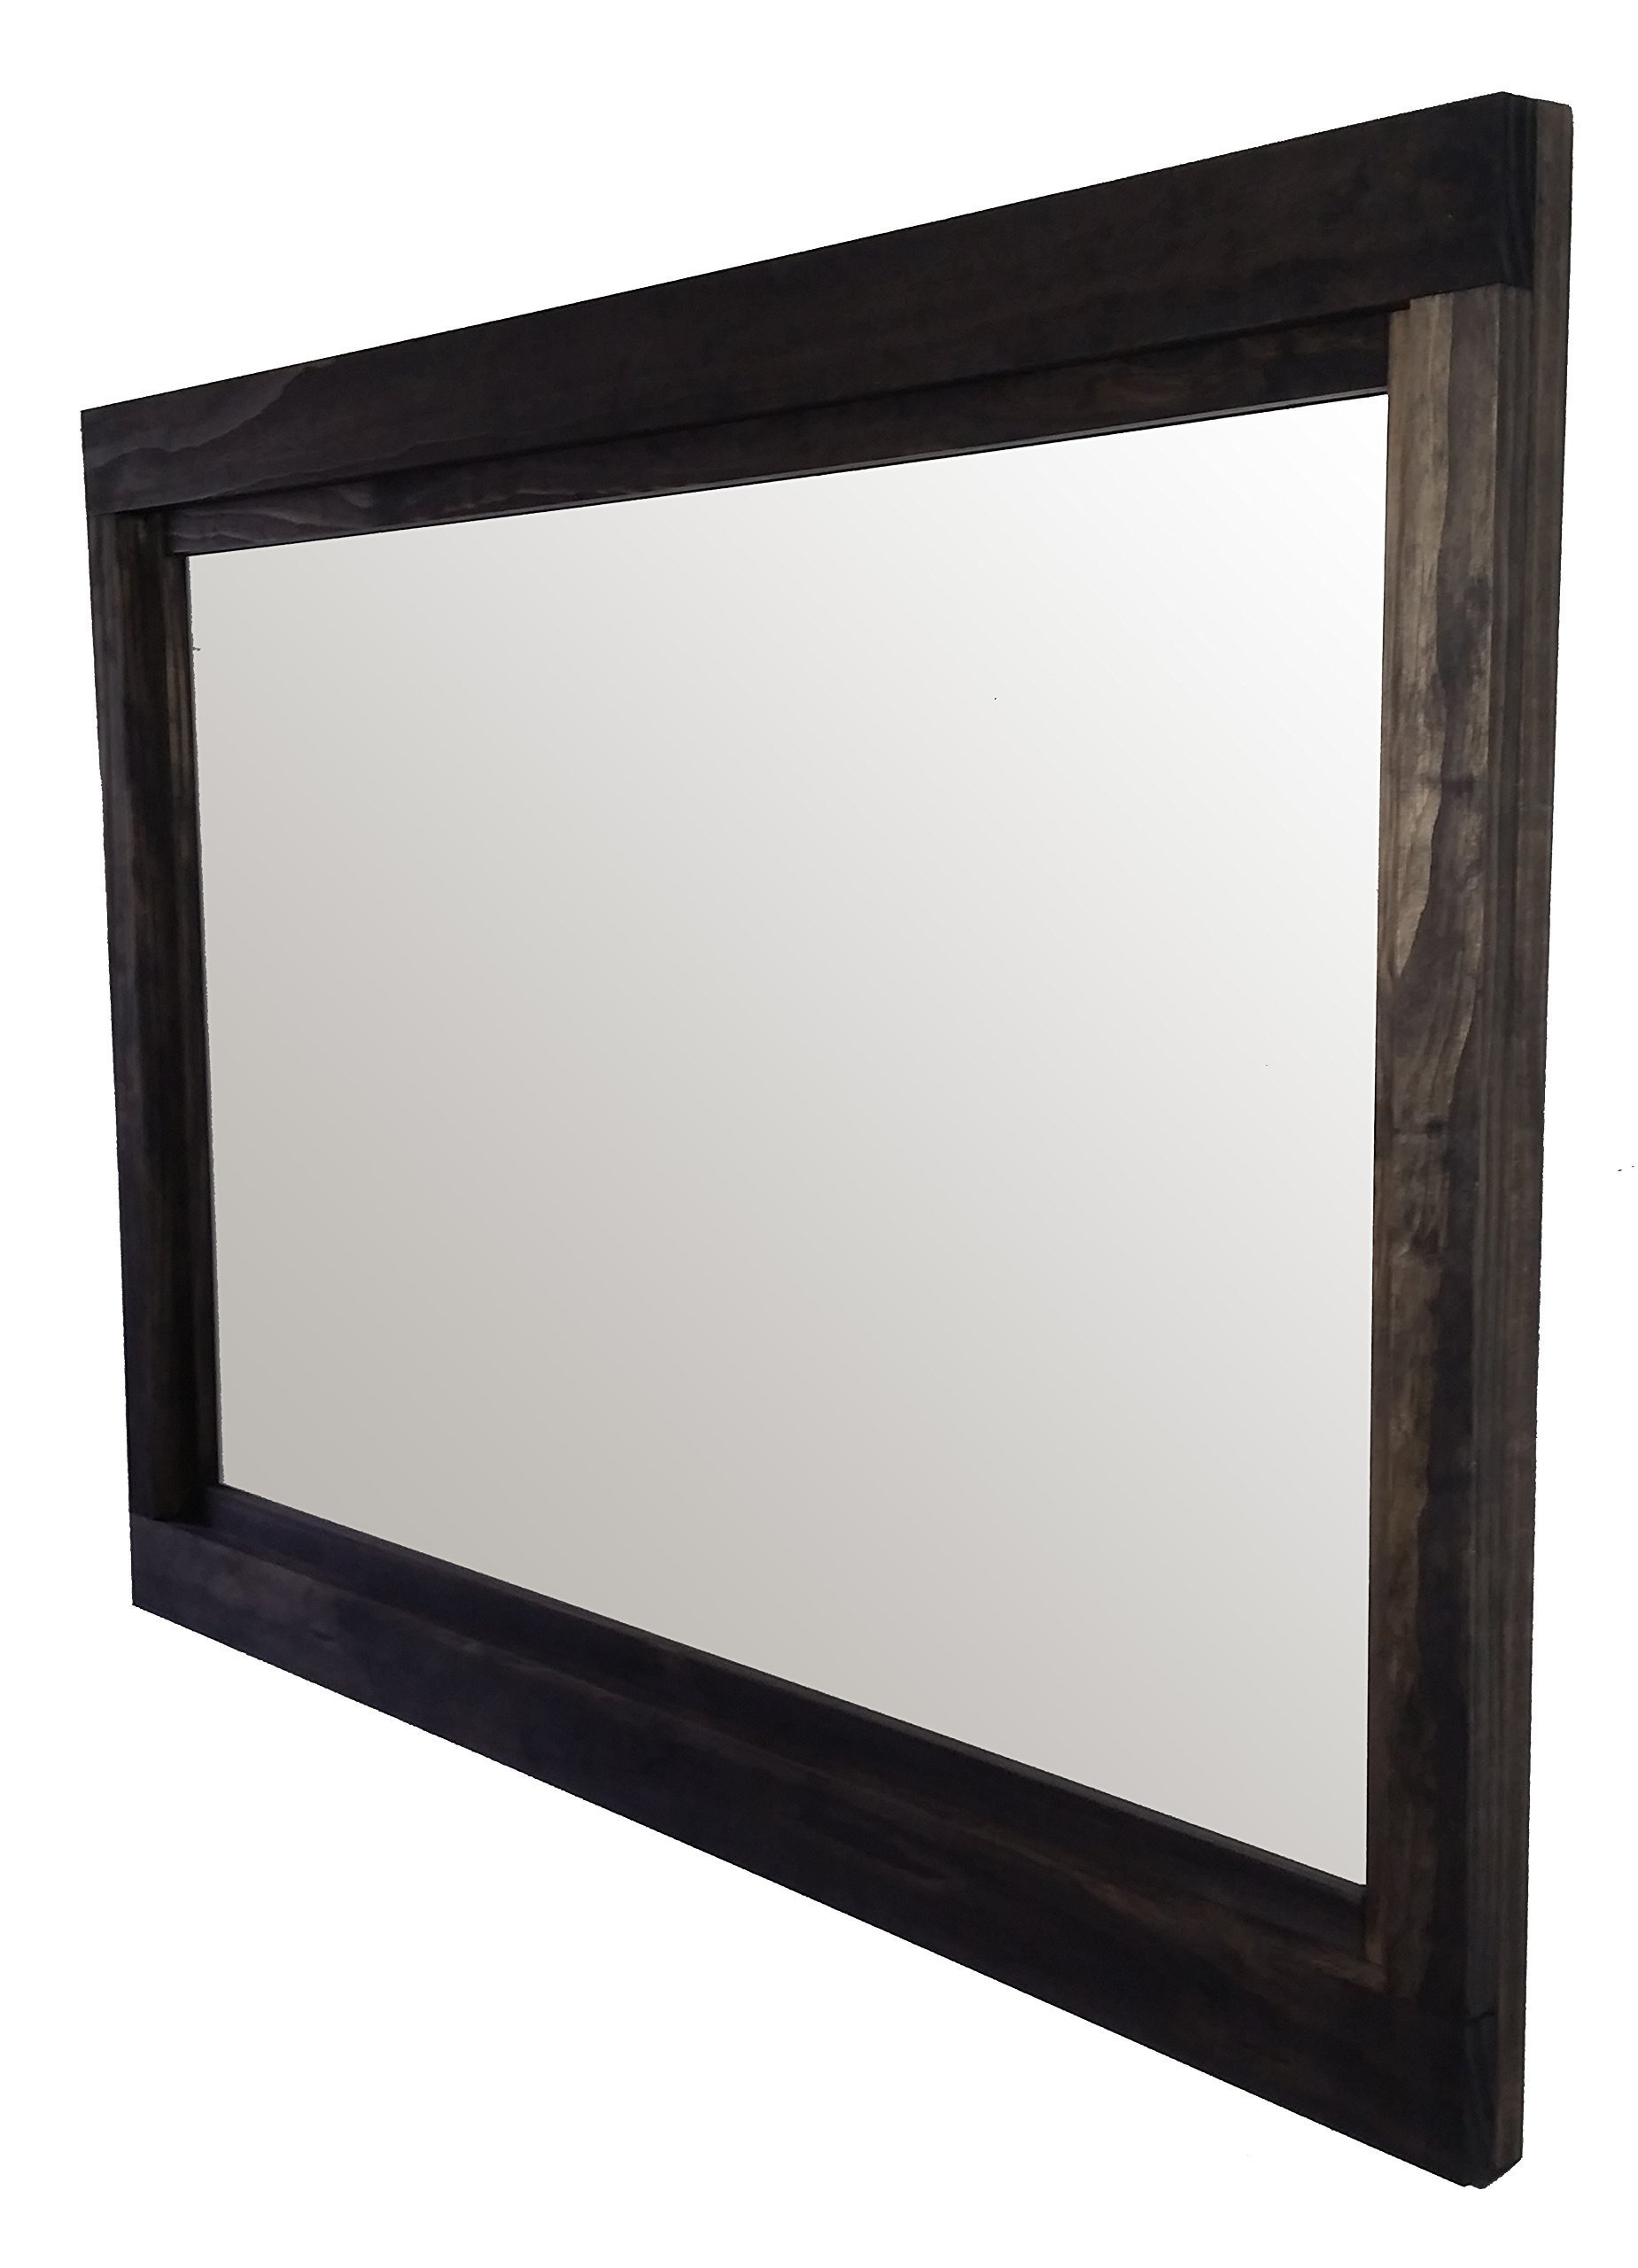 Farmhouse Horizontal Mirror 42 x 30 Stained in Ebony - Large Wall sMirror - Rustic Modern Home - Home Decor - Mirror - Housewares - Woodwork - Frame - Stained Mirror by Renewed Decor